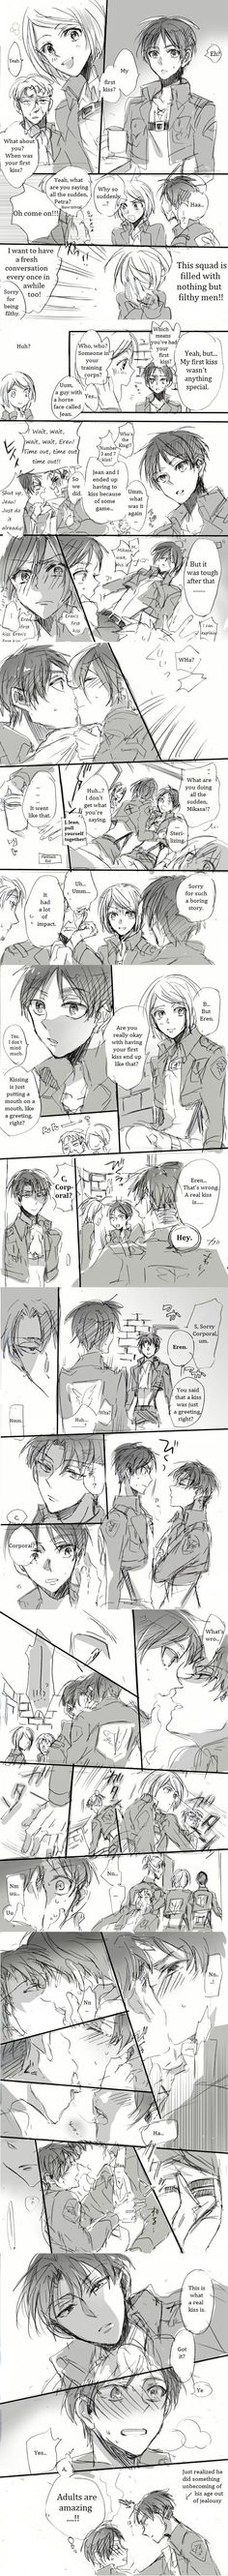 i love this comic it made me love ereri '*-* I MEAN LOOK AT THE WAY LEVI KISSES EREN * nosebleed*